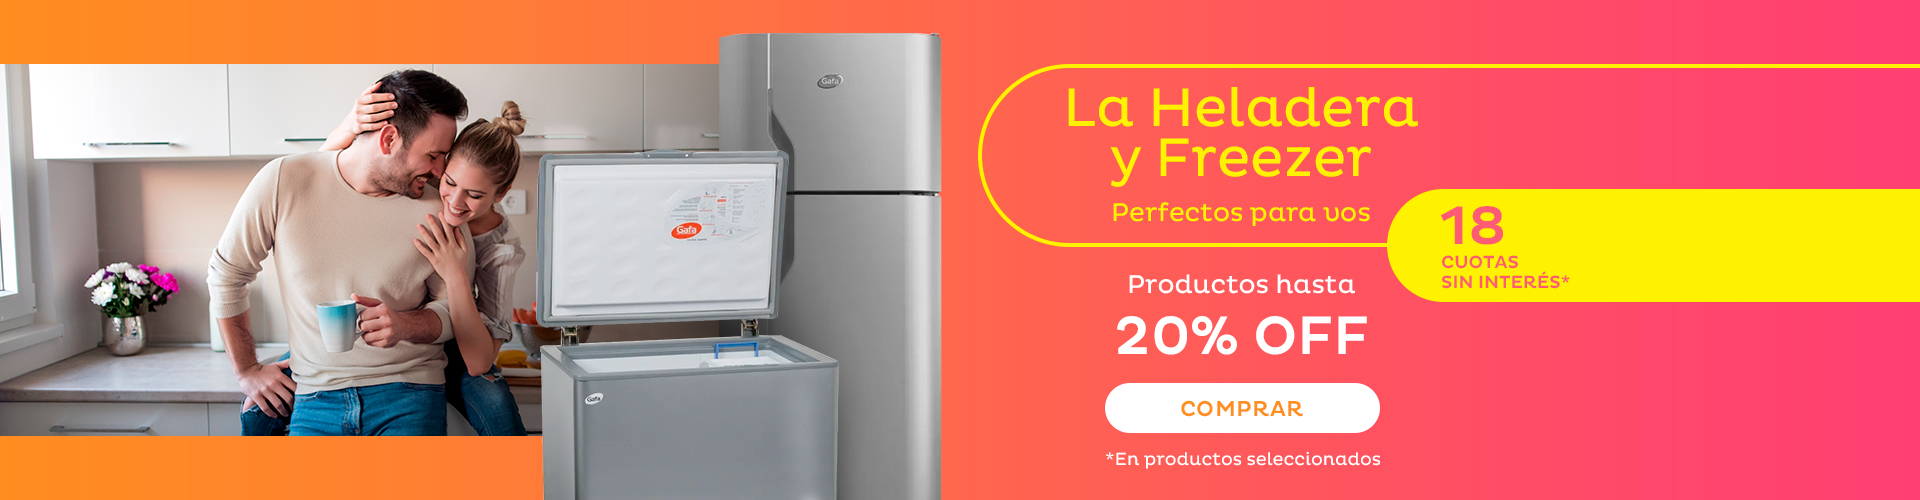 Banner TV Heladera y Freezer Perfectos